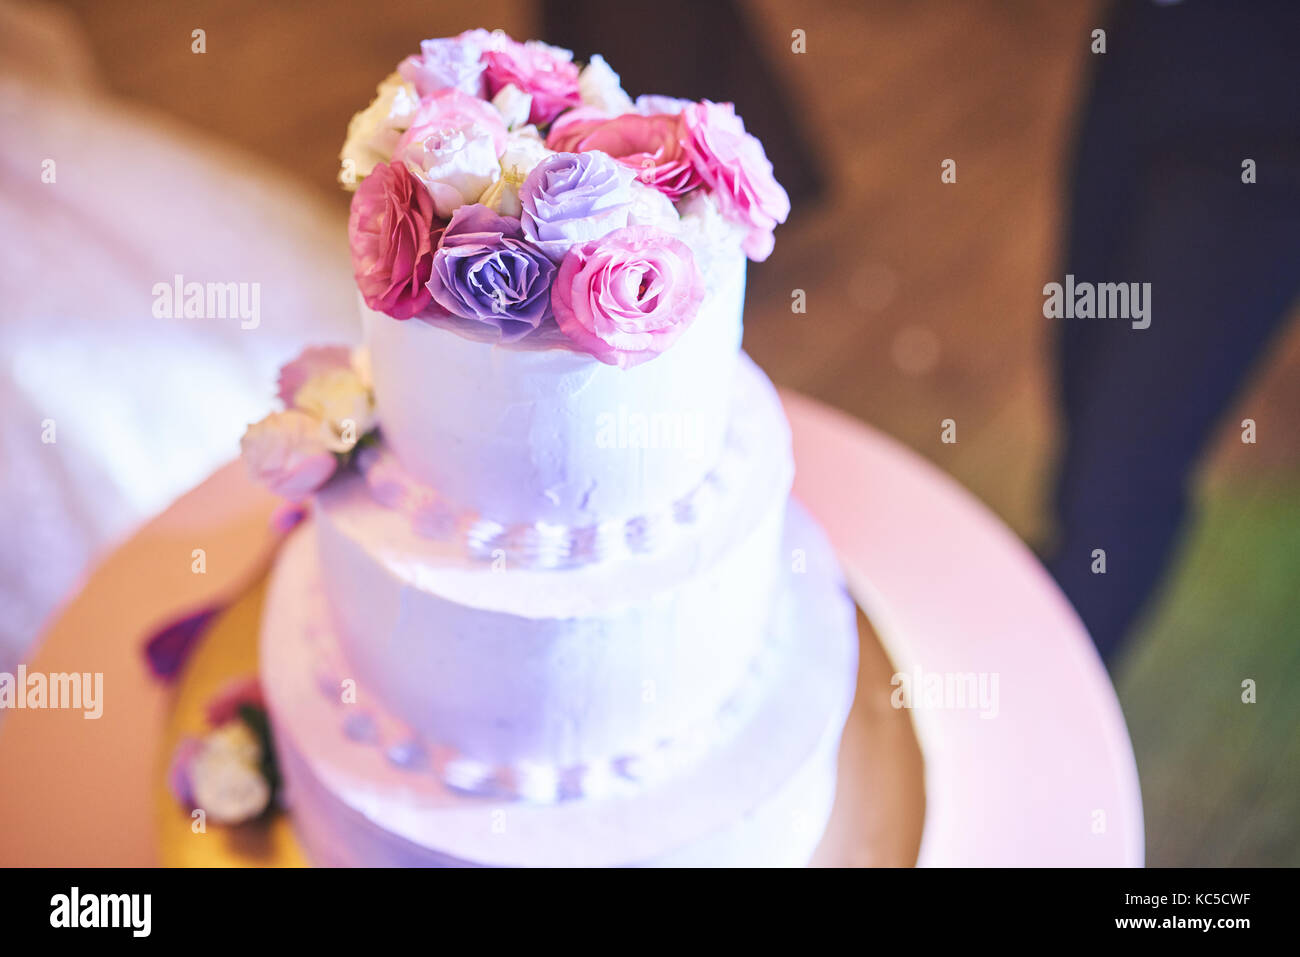 Beautiful of Wedding Cake with Flowers on Top - Stock Image